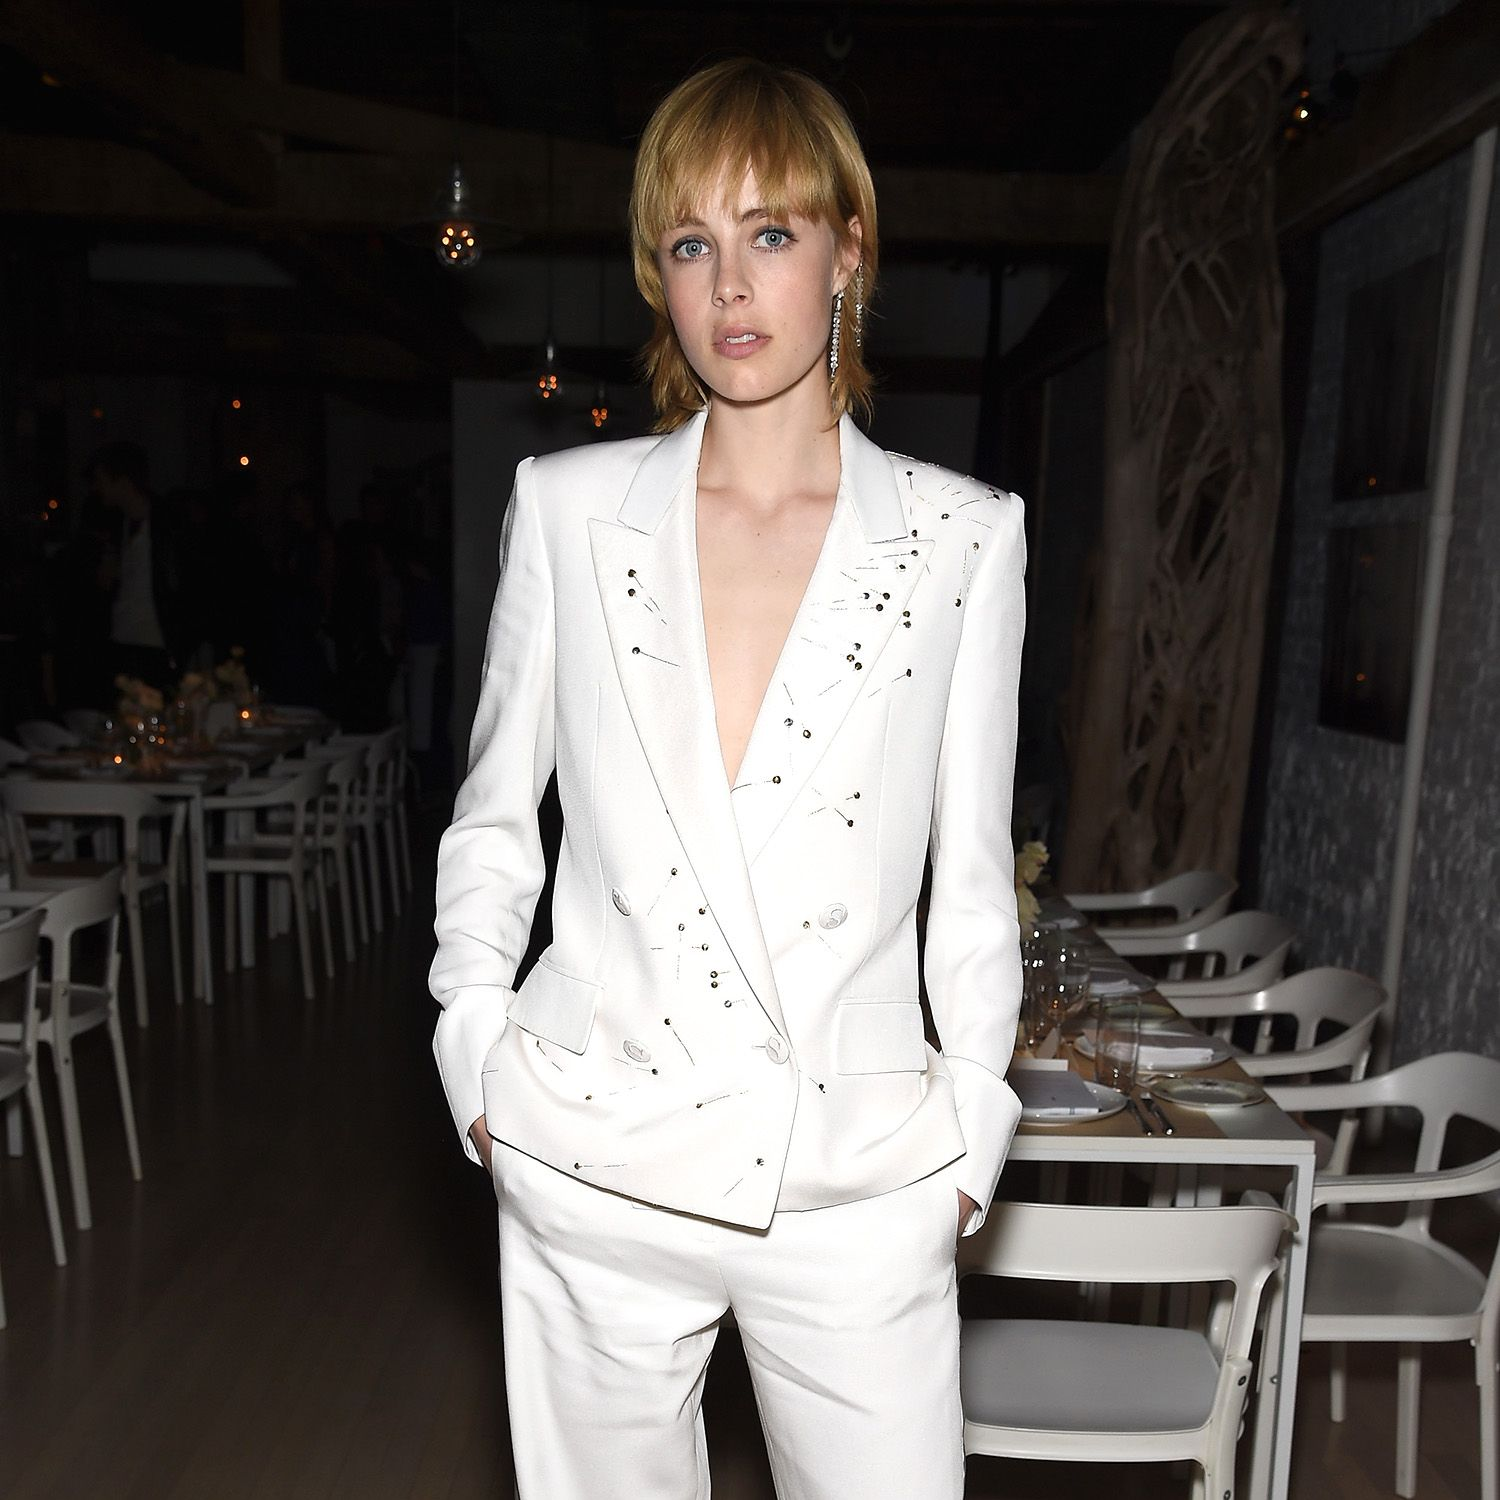 NEW YORK, NY - APRIL 15:  Model Edie Campbell attends the 2015 Tiffany Blue Book dinner on April 15, 2015 in New York City.  (Photo by Dimitrios Kambouris/Getty Images for Tiffany &amp&#x3B; Co.)